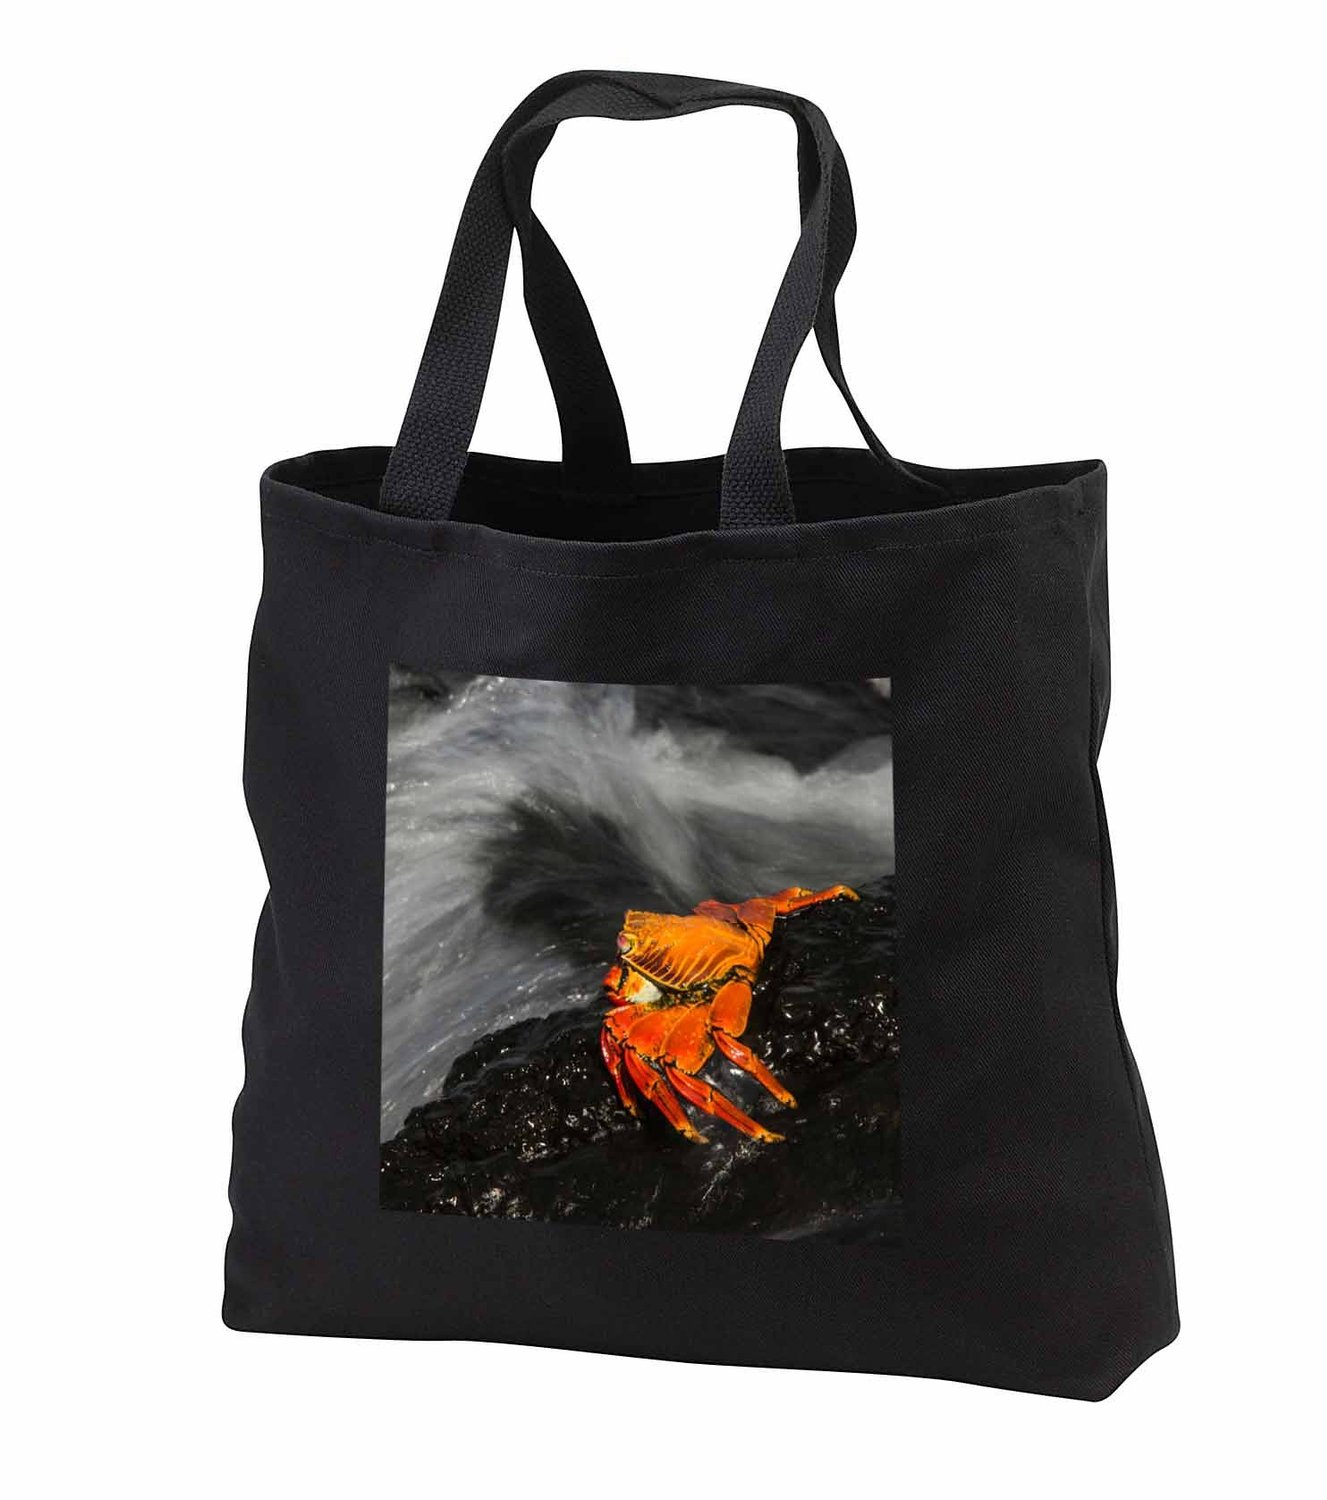 tb_228954 Danita Delimont - Crabs - Sally Lightfoot Crab, Grapsus grapsus, Galapagos Islands, Ecuador. - Tote Bags